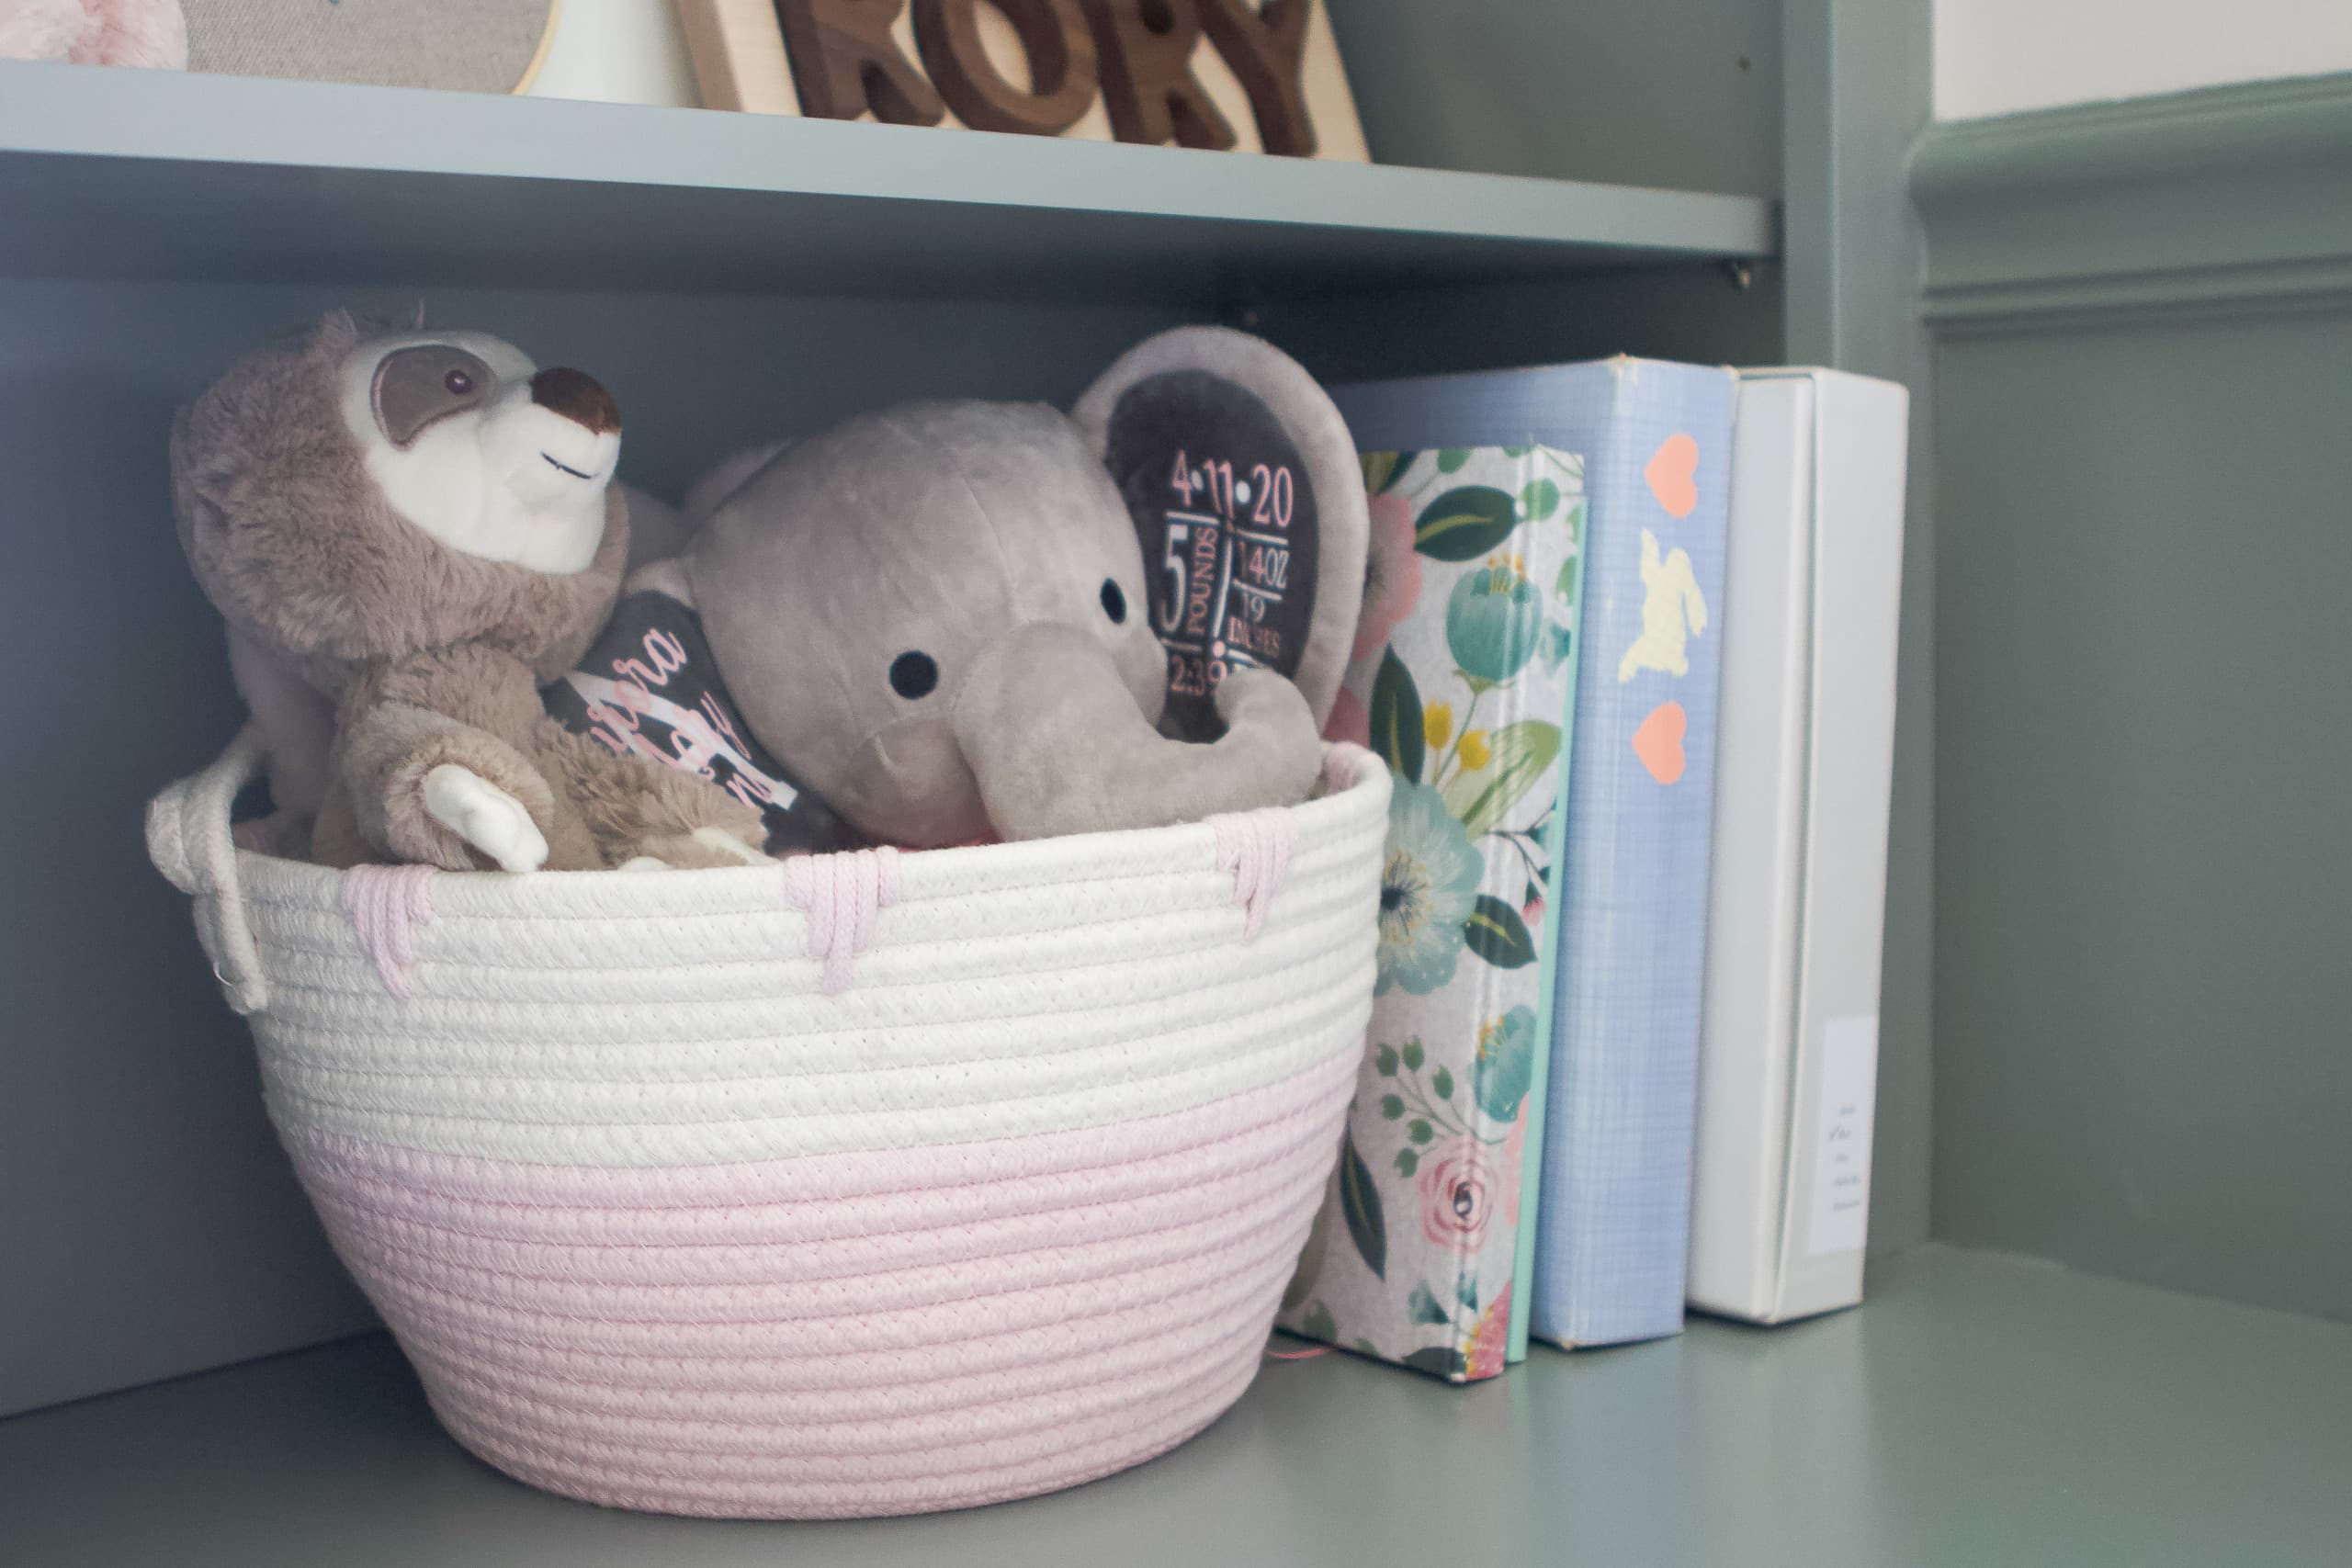 Use baskets to corral items on nursery shelves